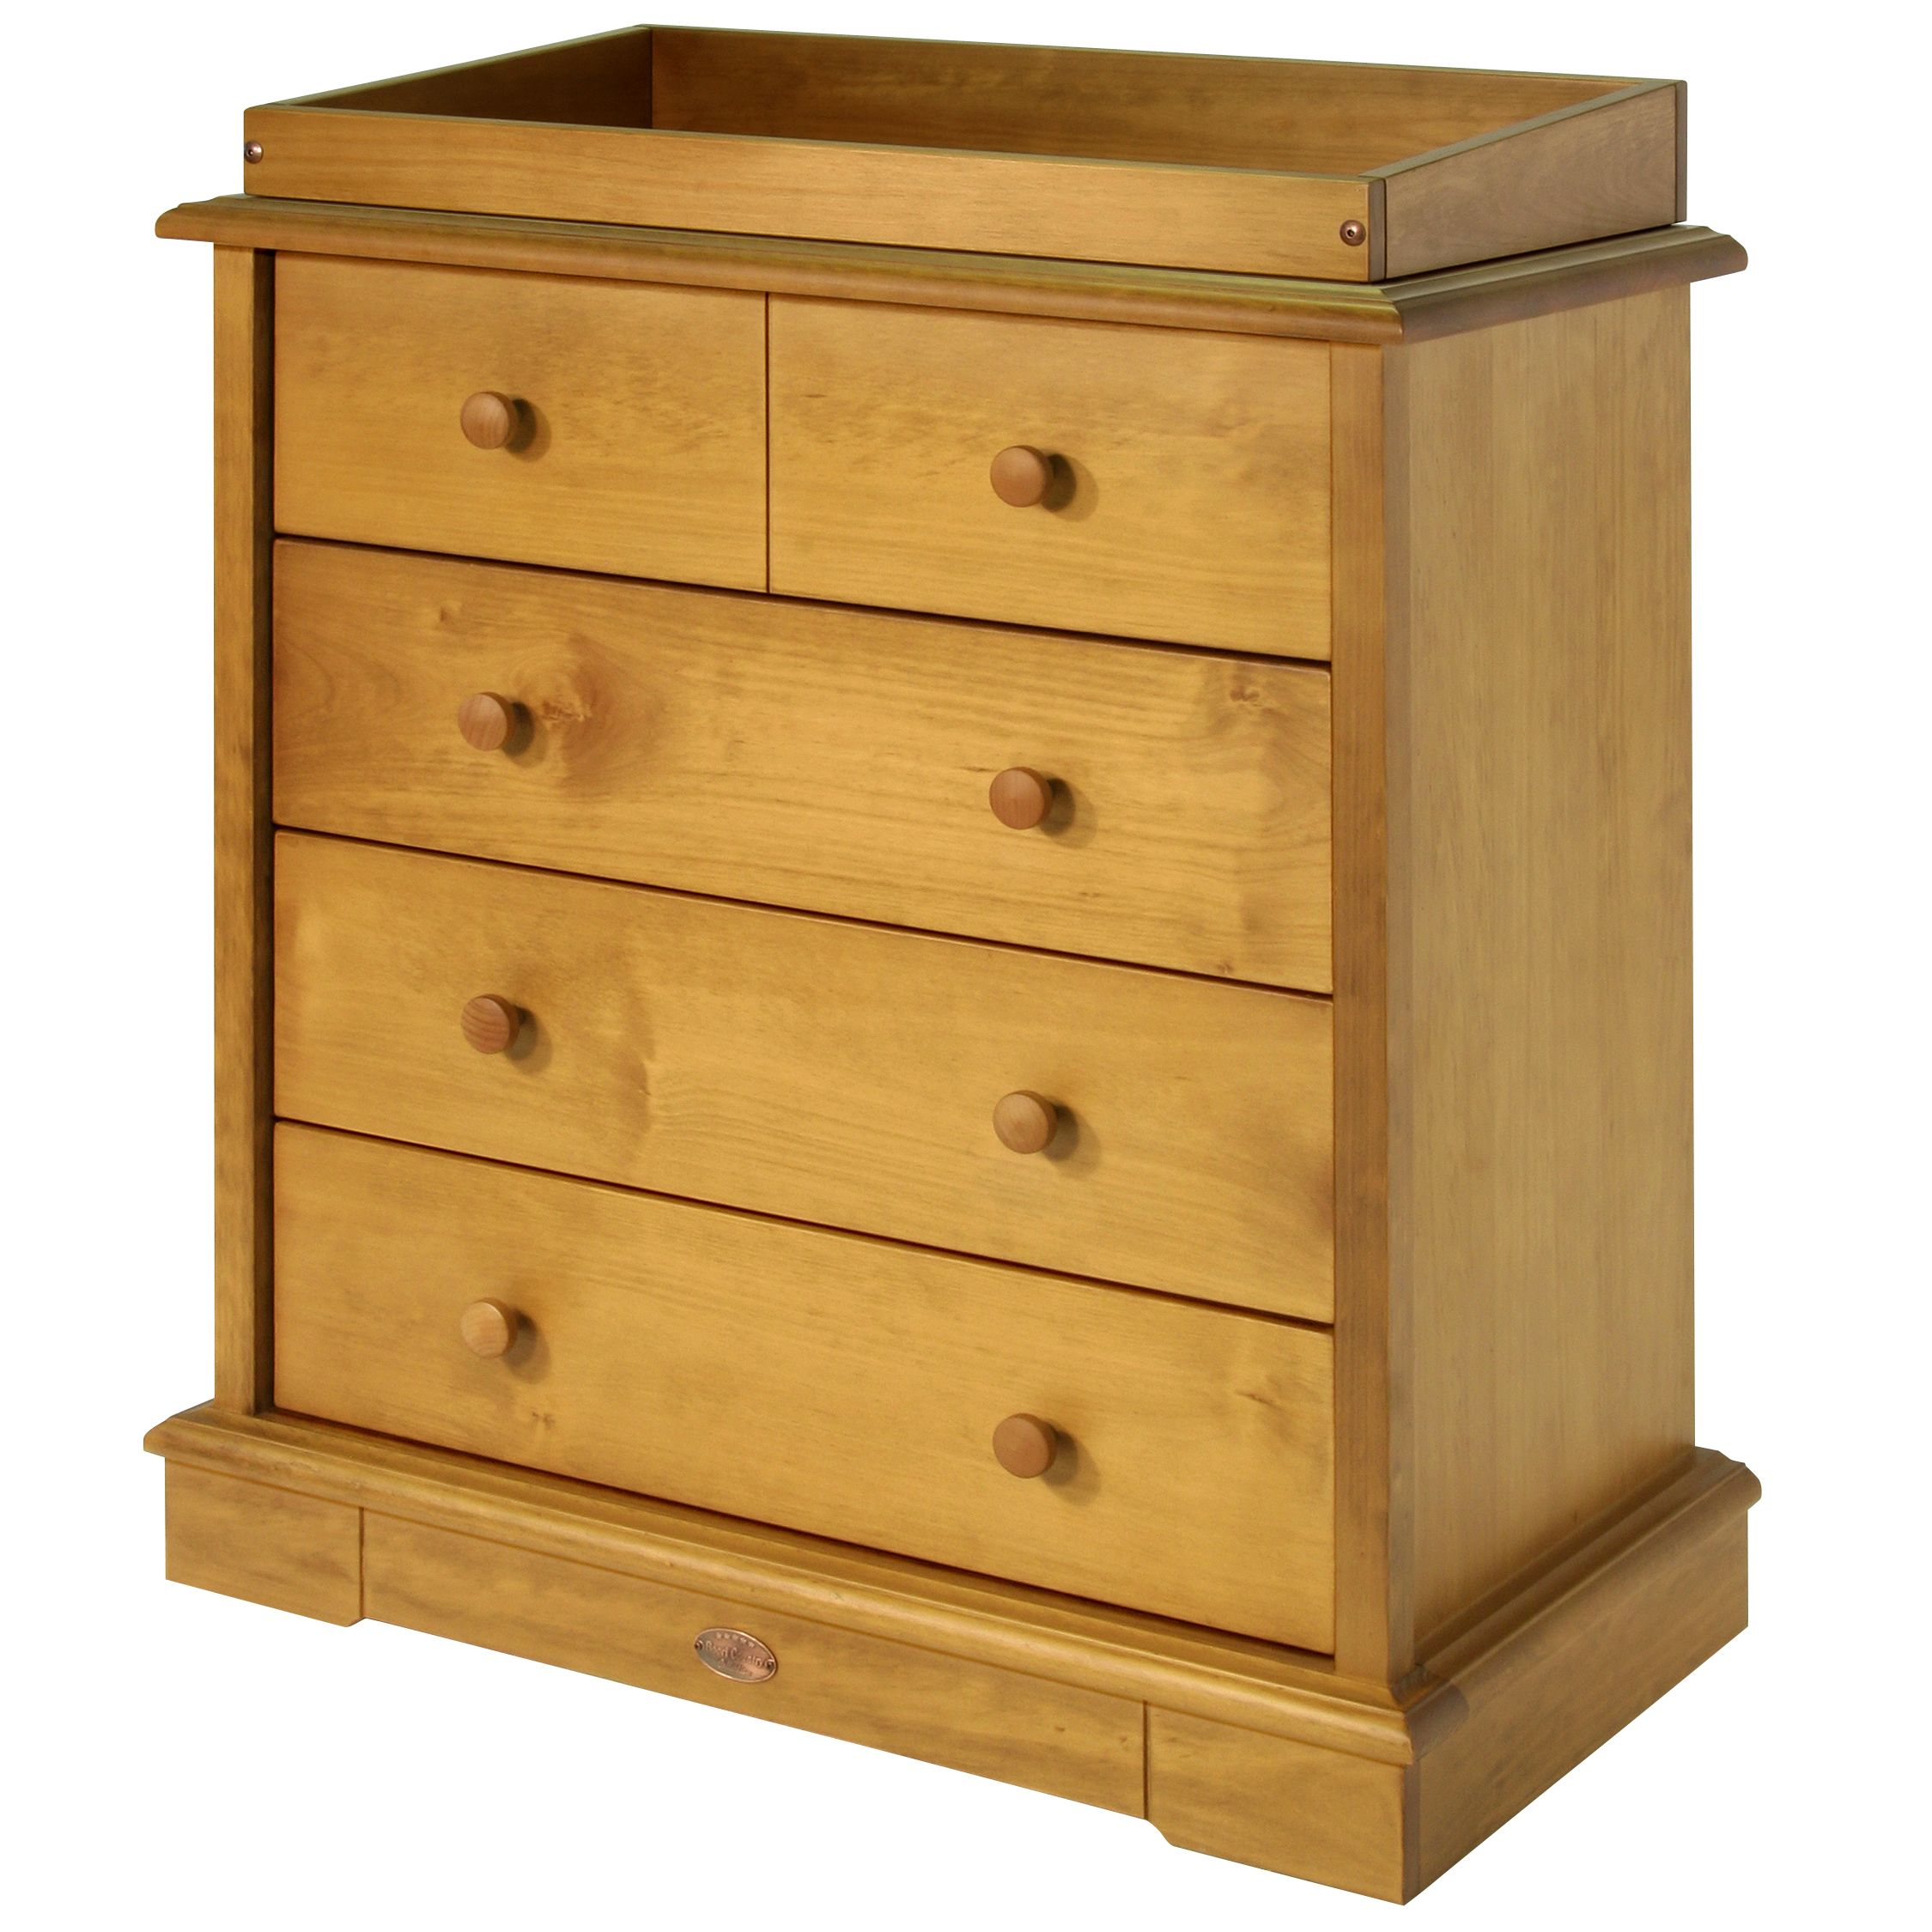 4 Drawer Chest, Heritage Teak